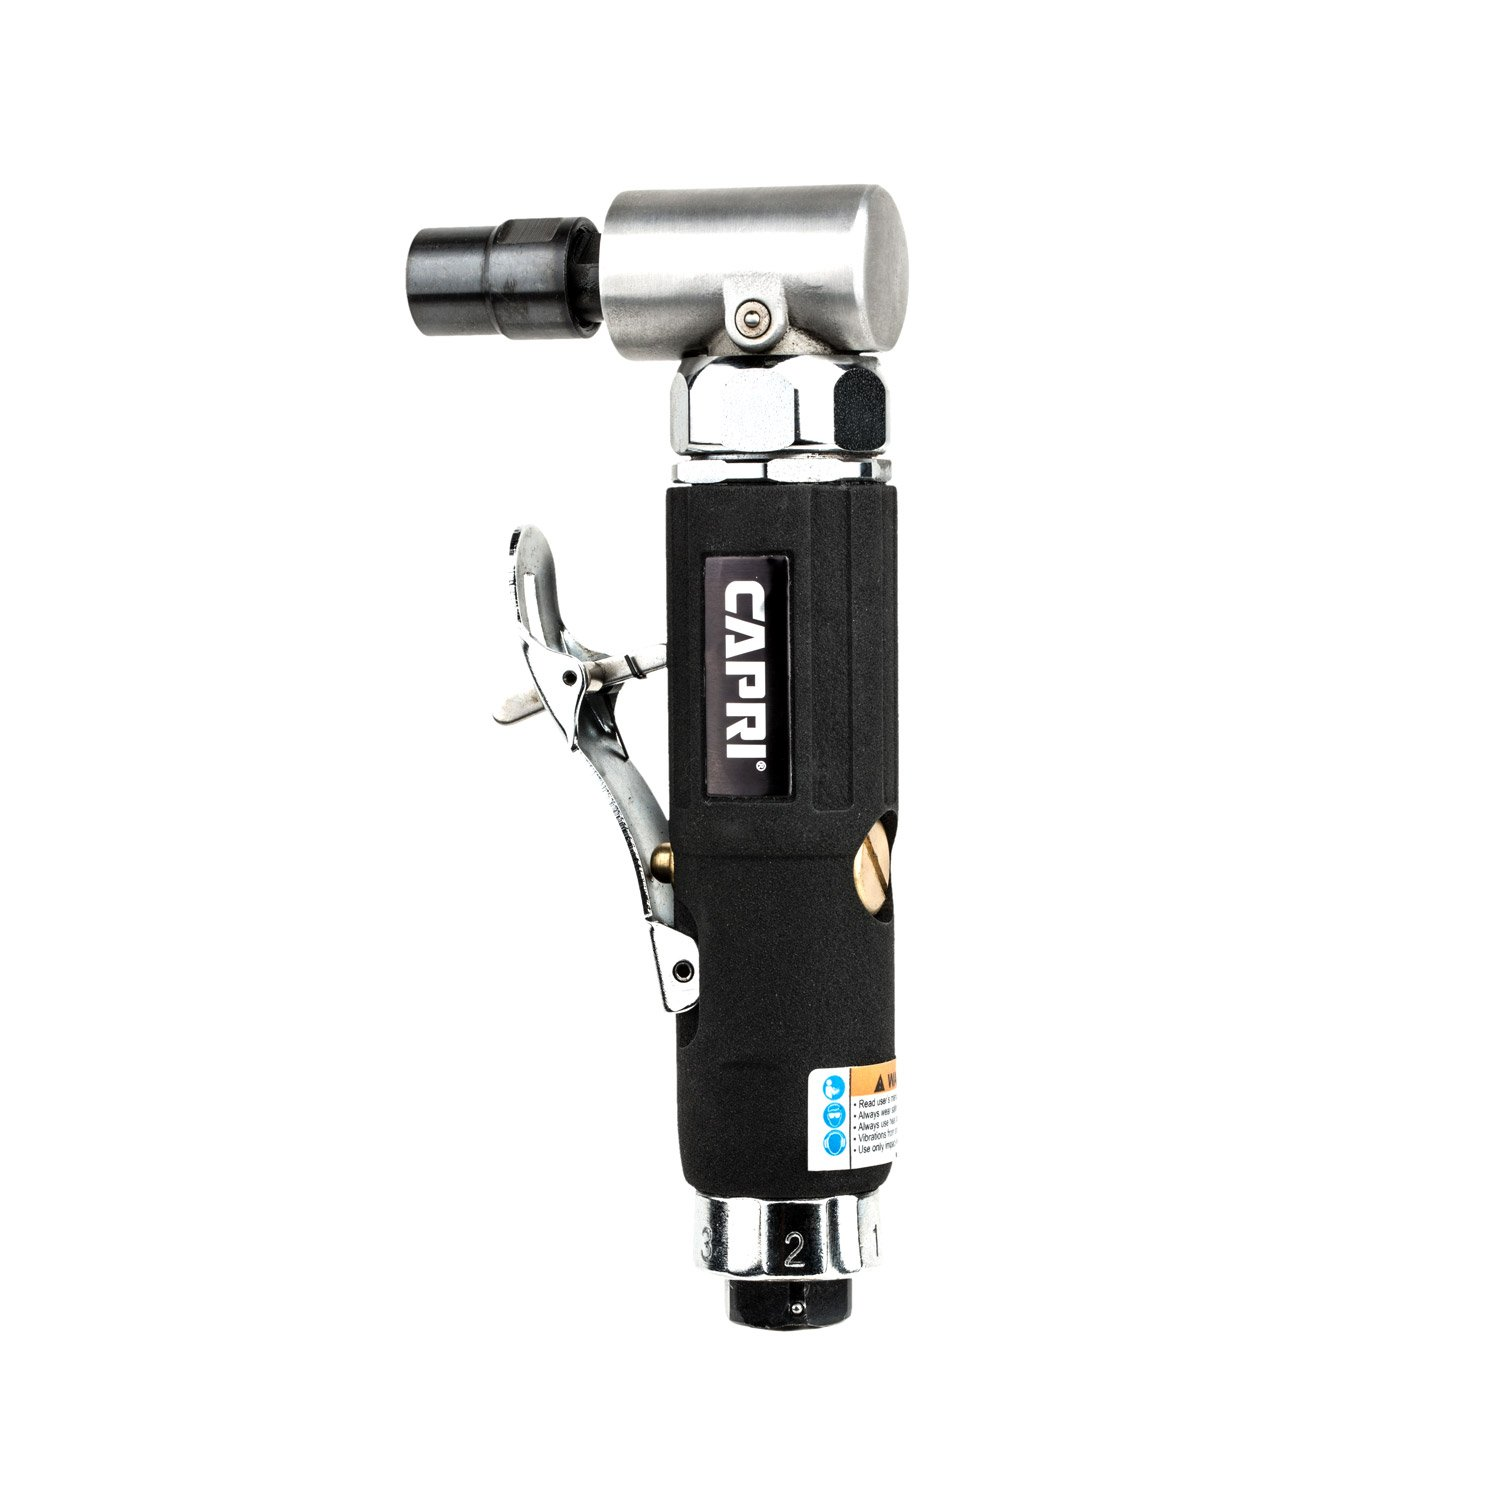 Capri Tools CP32072 Industrial Air Angle Die Grinder, 1/4'' by Capri Tools (Image #1)